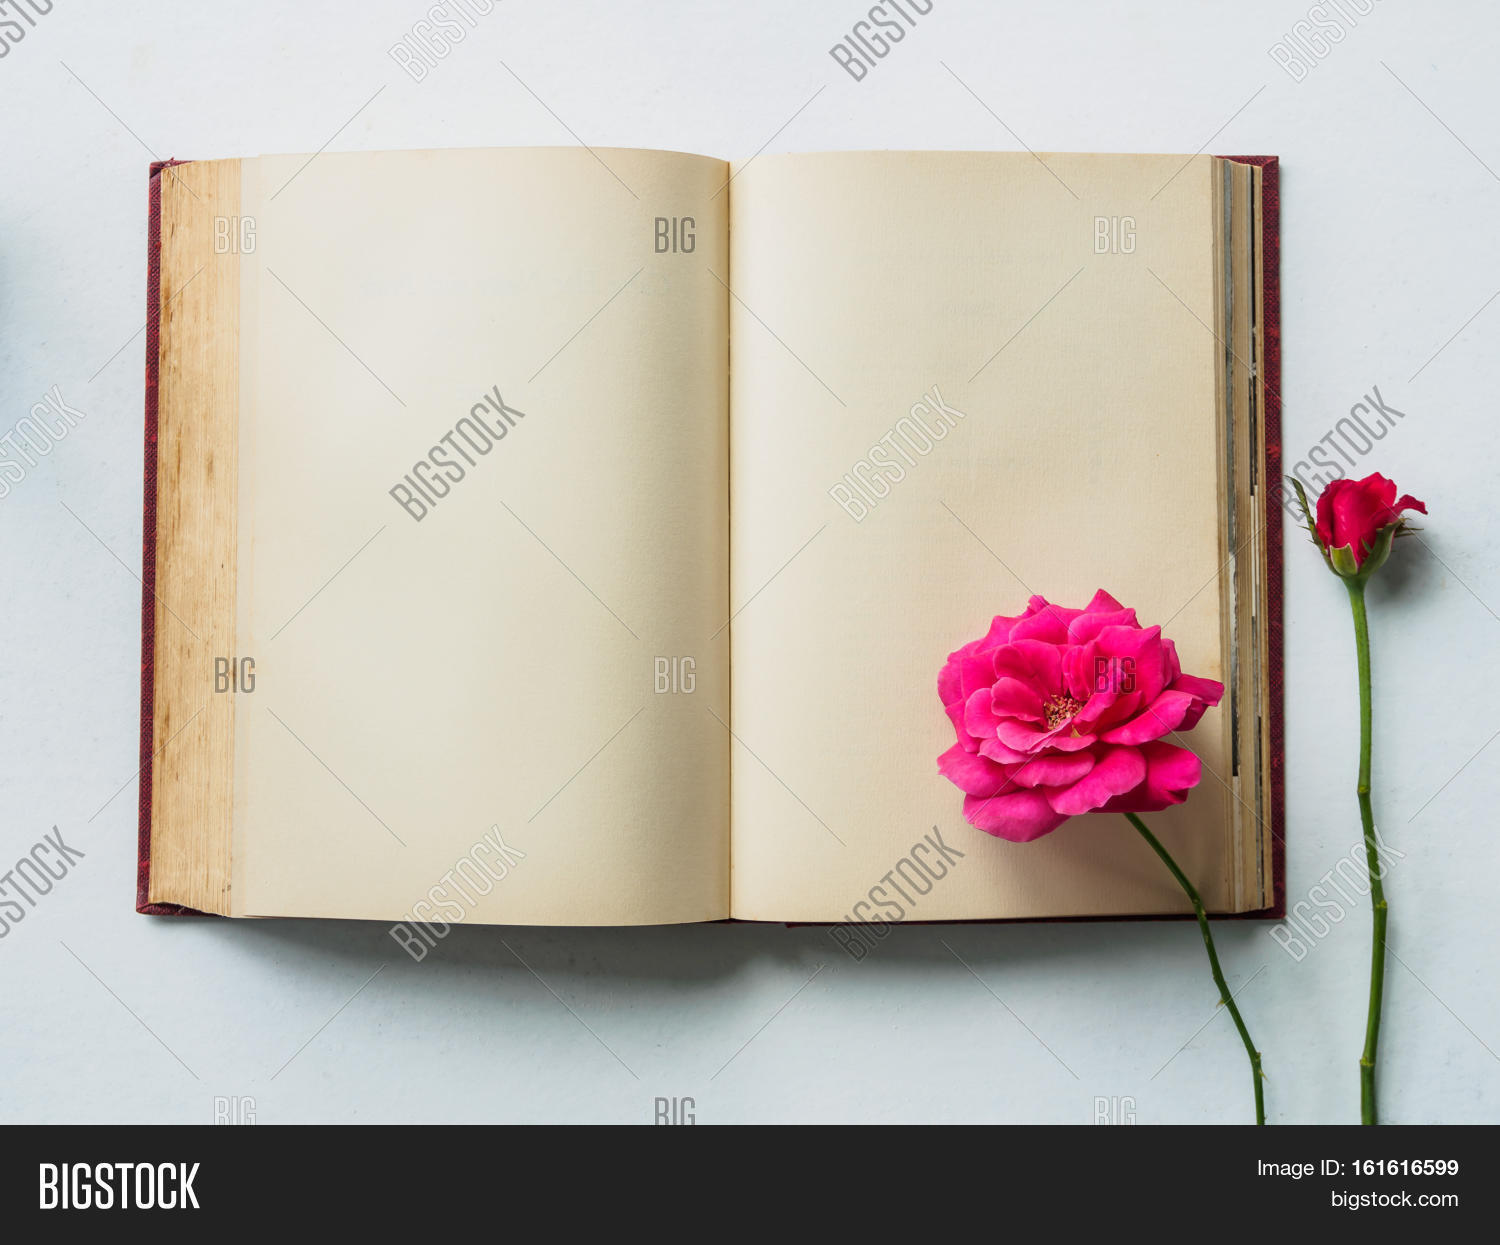 Love Story Concept Image Photo Free Trial Bigstock Vintage Flower Shabby Rose 1 Flat Lay Of Blank Old Book Open With Pink On White